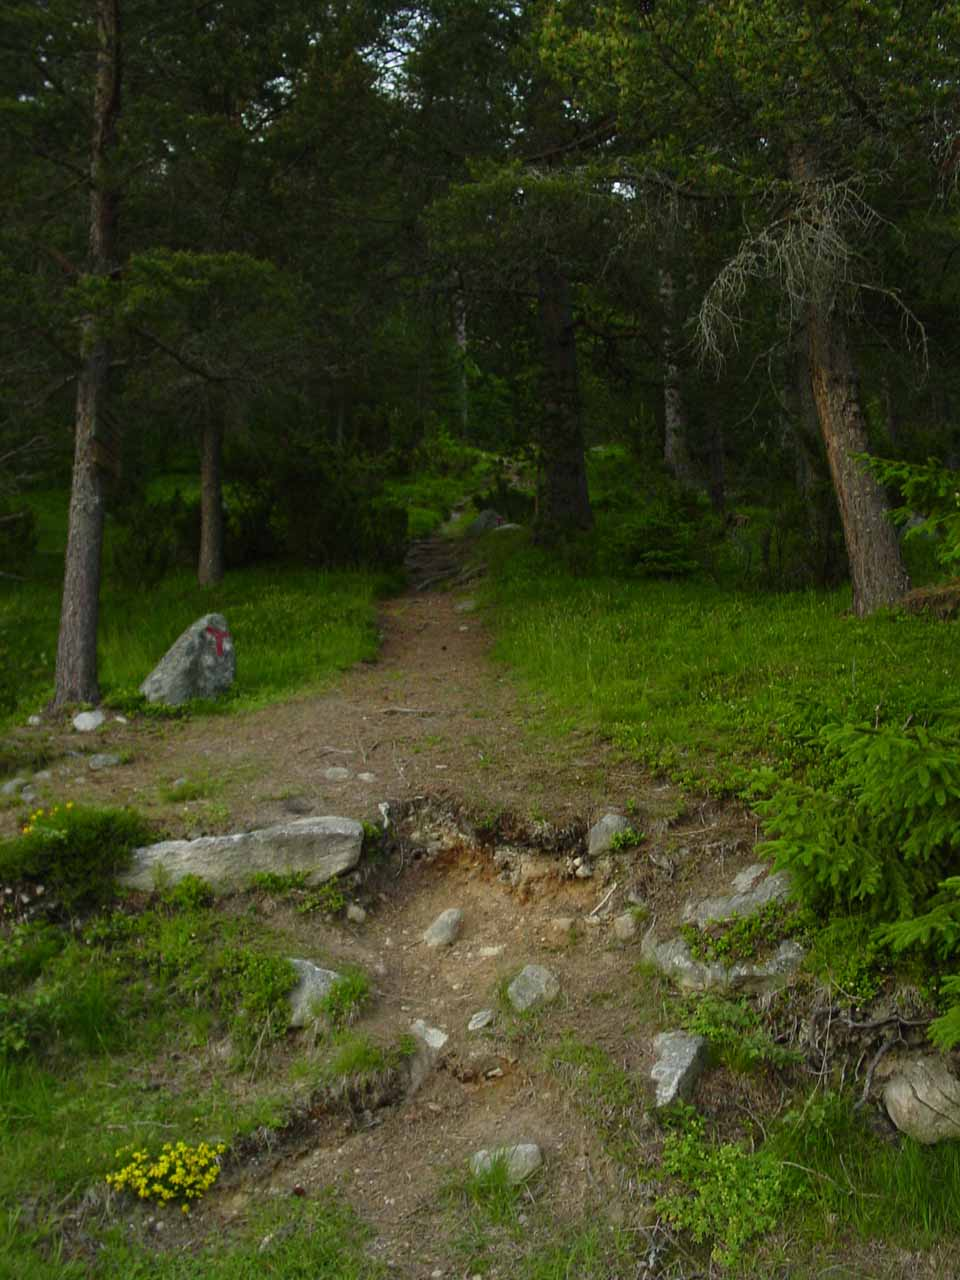 Following the spraypainted red Ts while still on the forested trail to Linndalsfossen